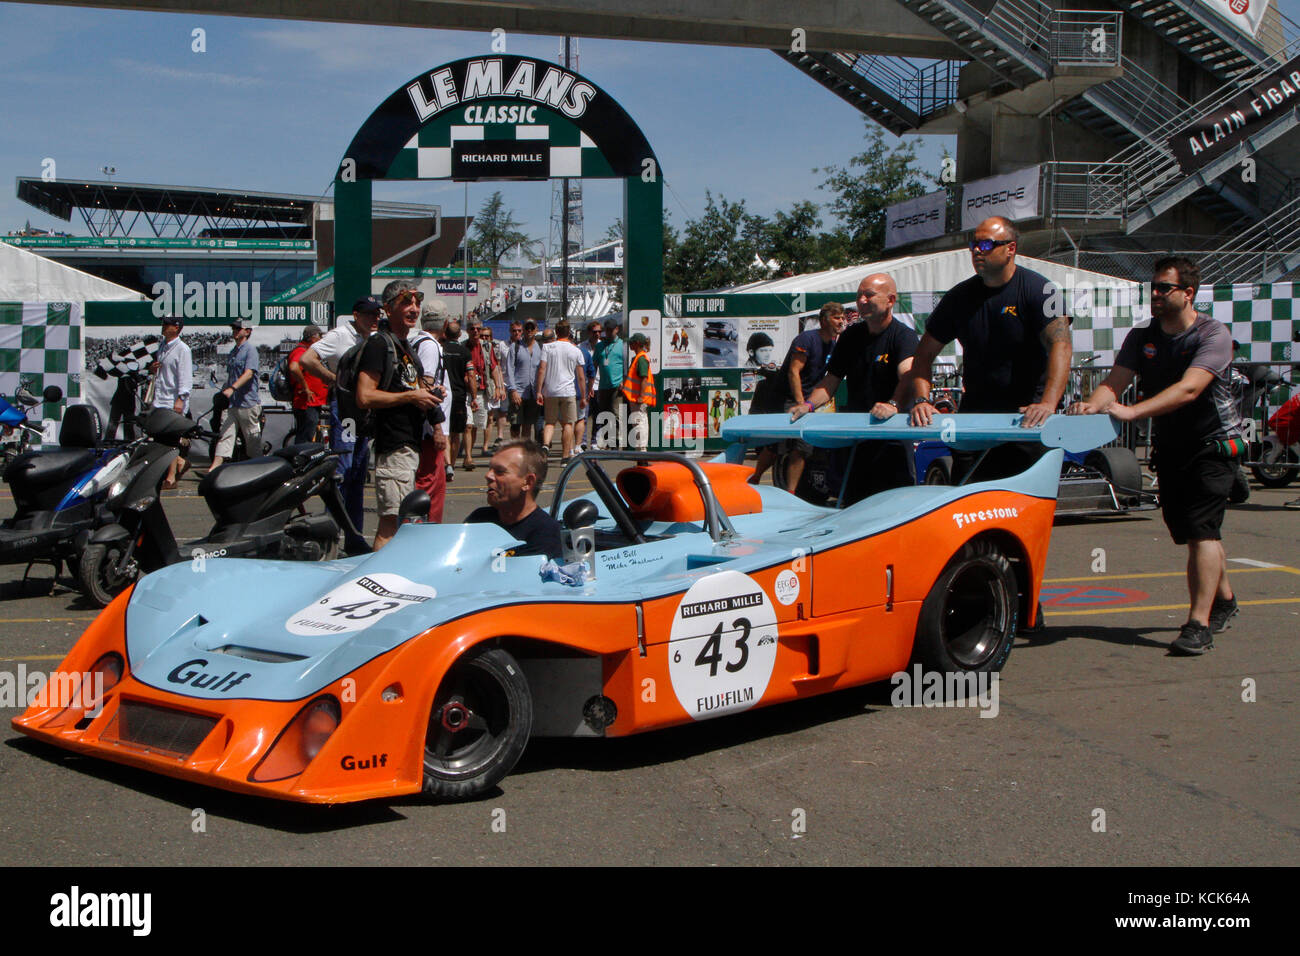 le mans classic stock photos le mans classic stock images alamy. Black Bedroom Furniture Sets. Home Design Ideas